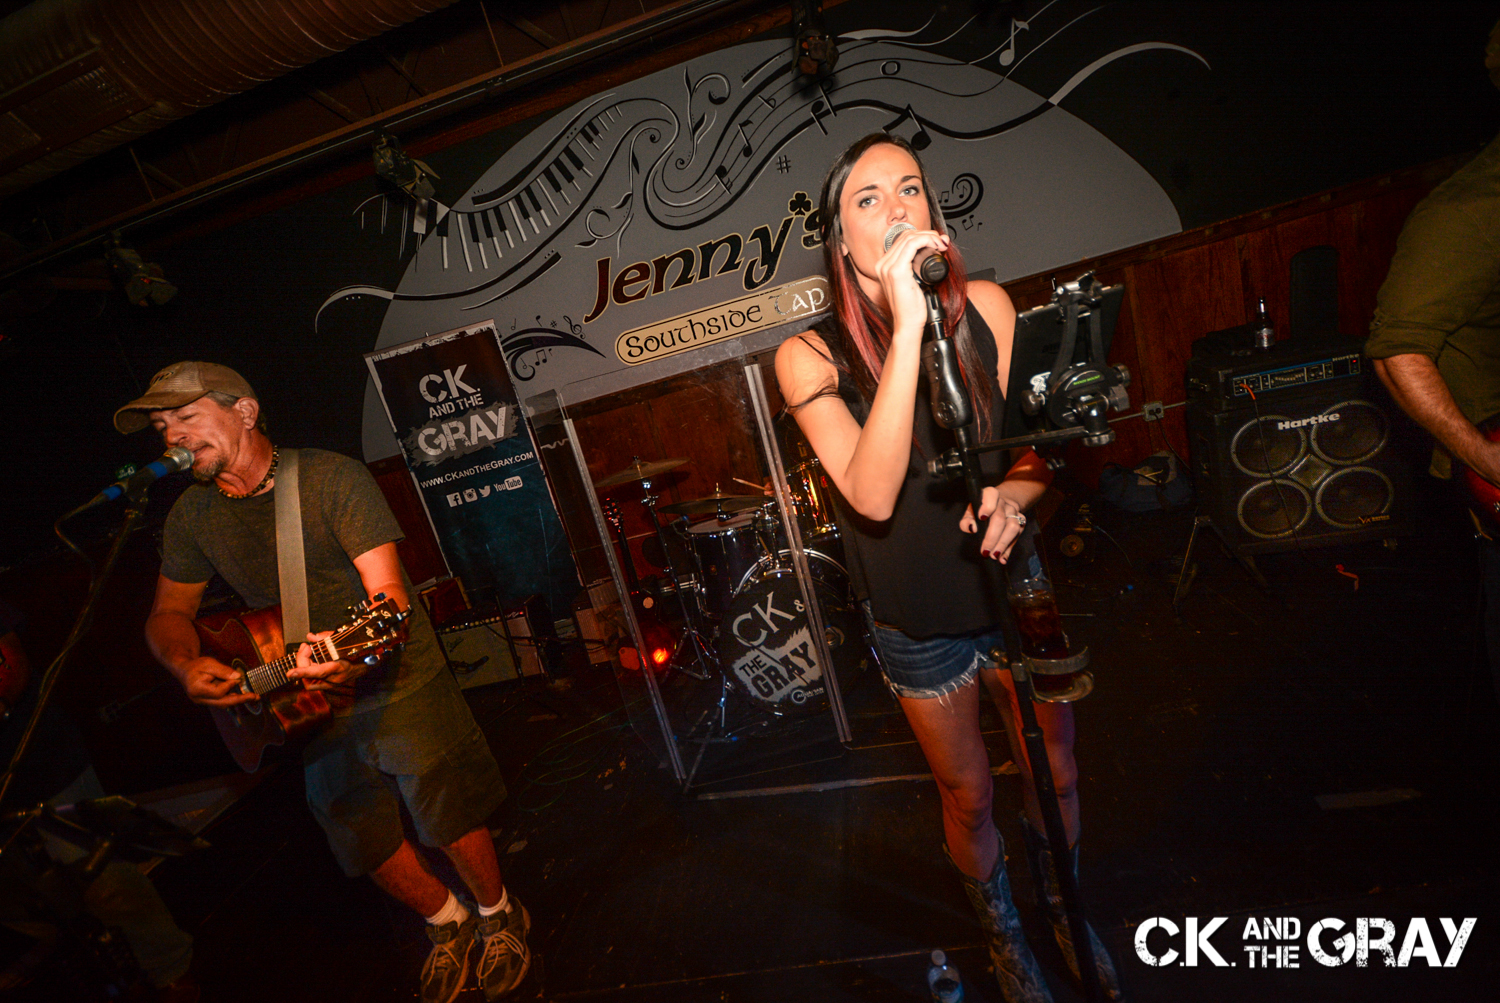 Kris Hachmeister and Chrissy Karl of CK and The Gray